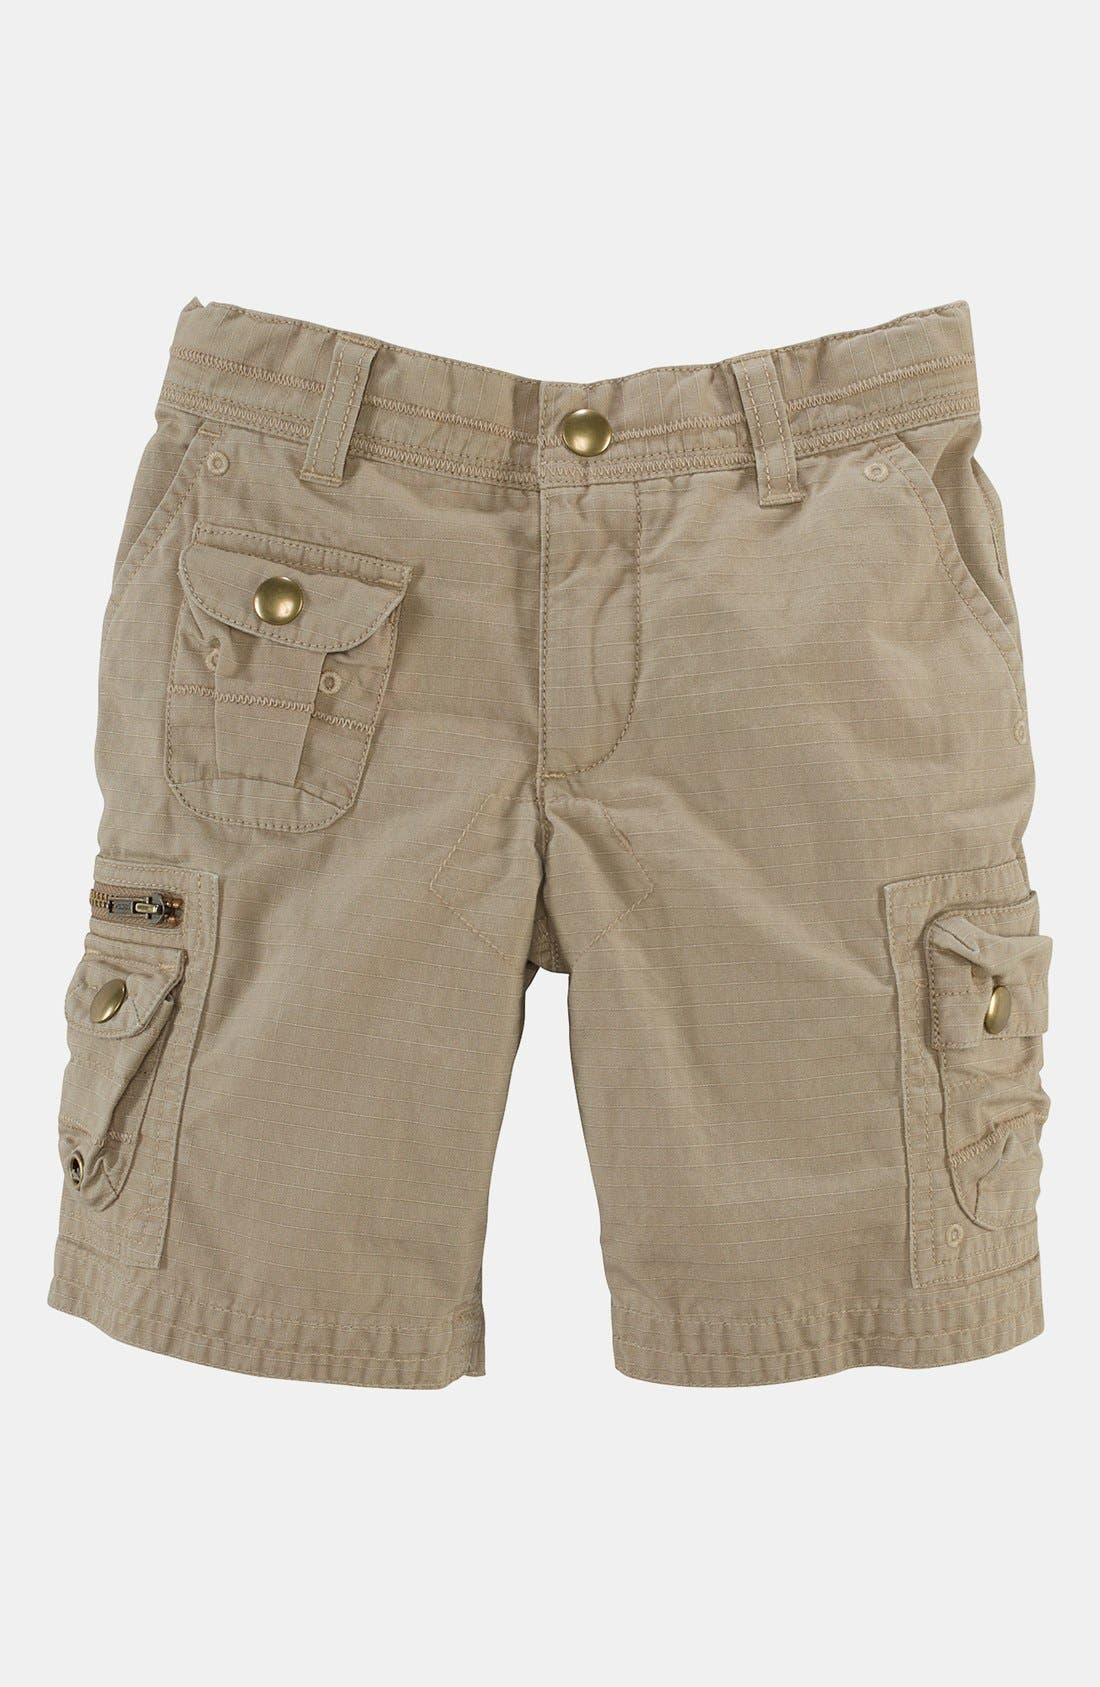 Alternate Image 1 Selected - Ralph Lauren Cargo Shorts (Toddler Boys)